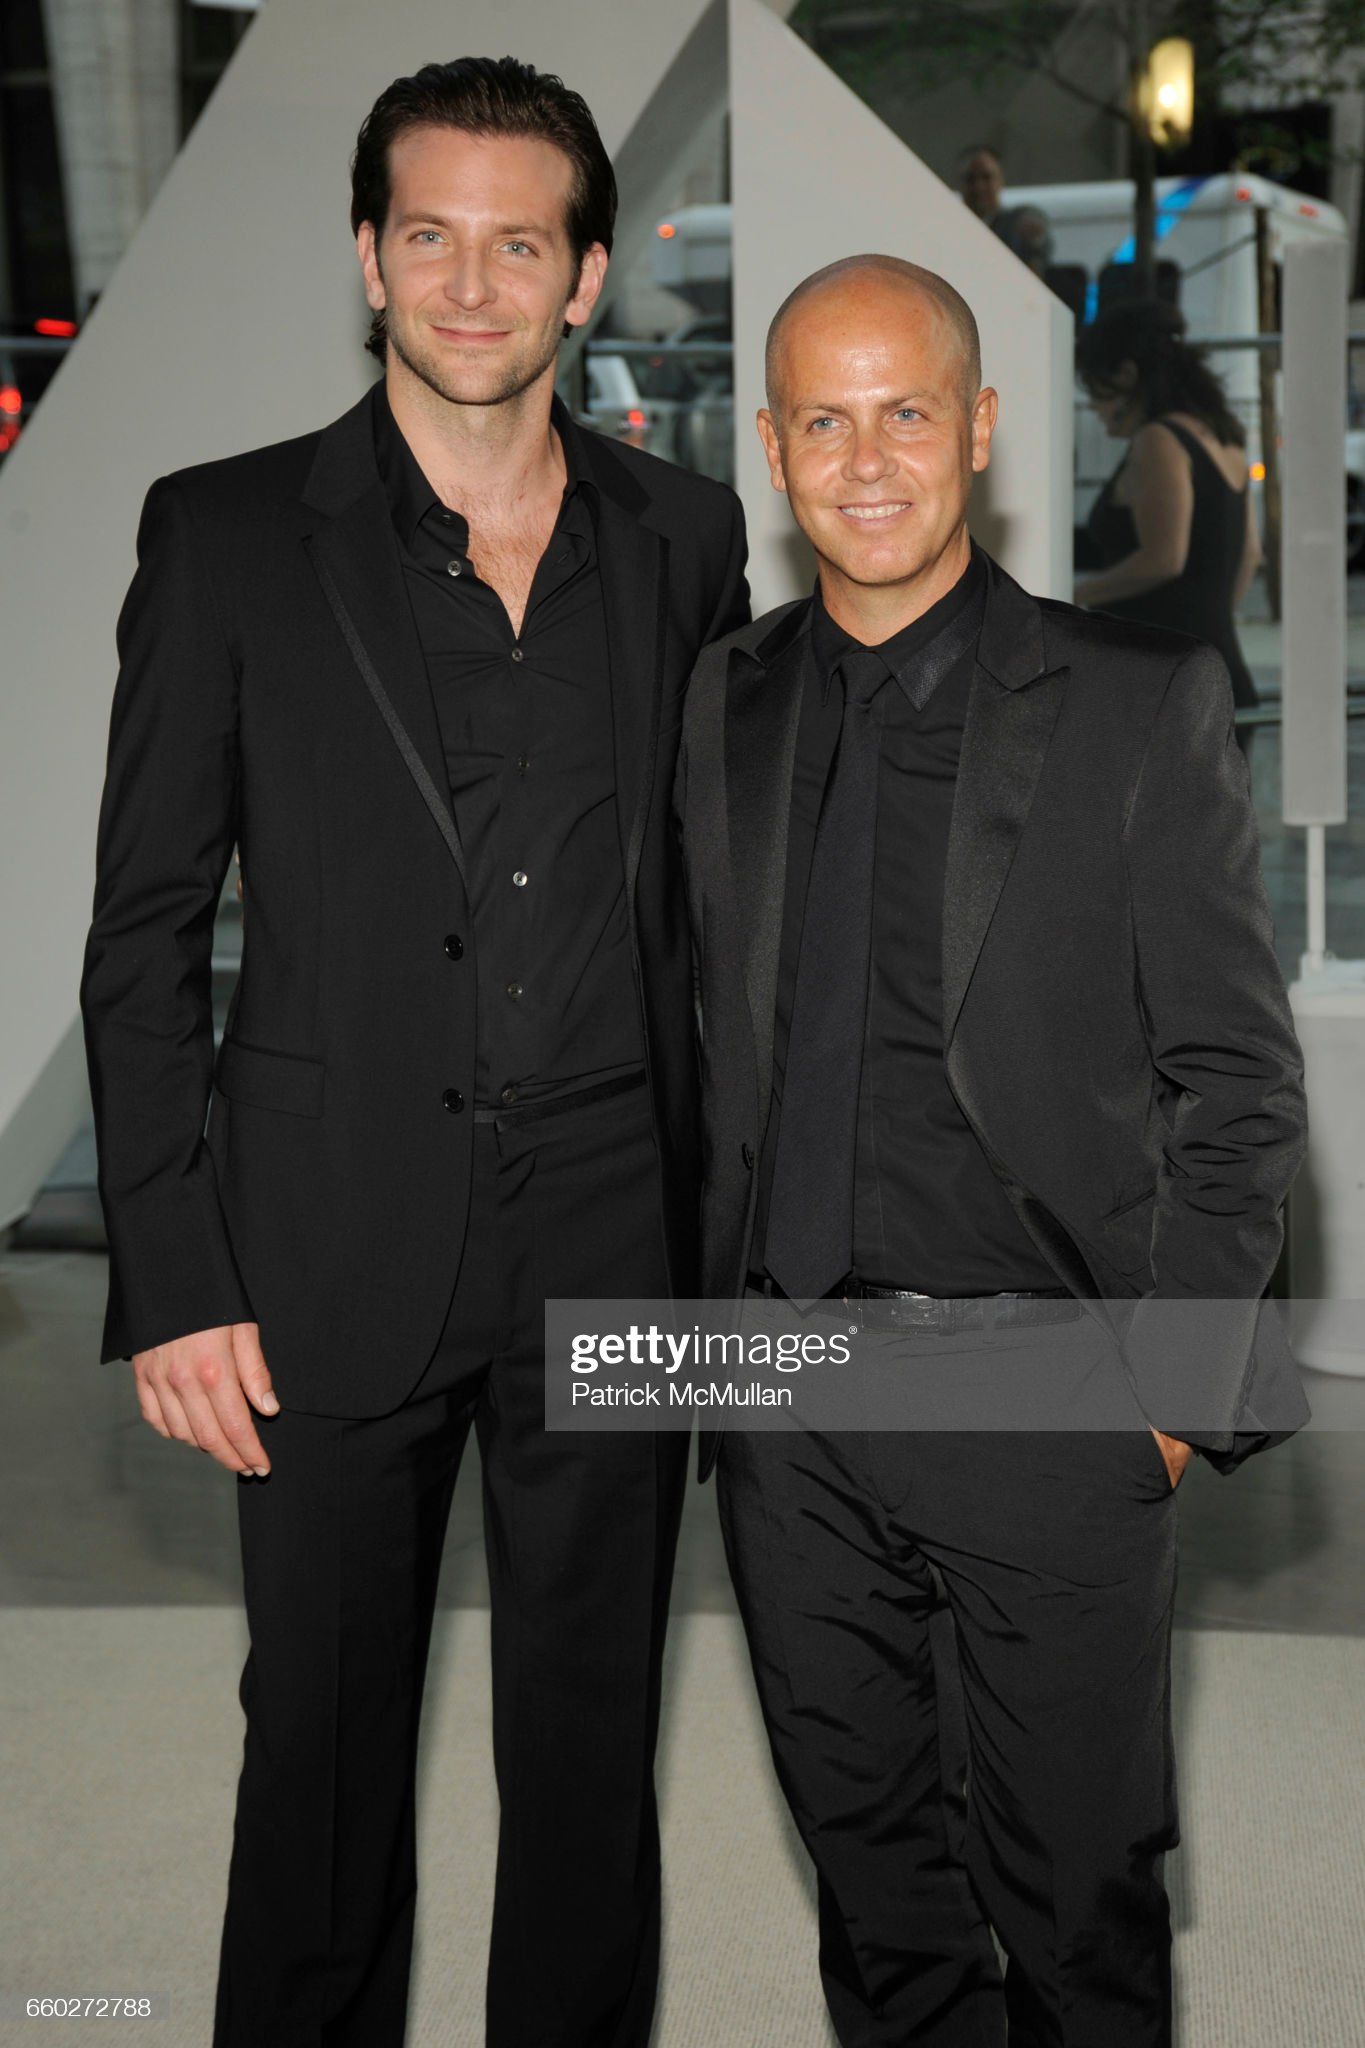 ¿Cuánto mide Italo Zucchelli? - Altura - Real height Bradley-cooper-and-italo-zucchelli-attend-cfda-awards-2009-inside-at-picture-id660272788?s=2048x2048